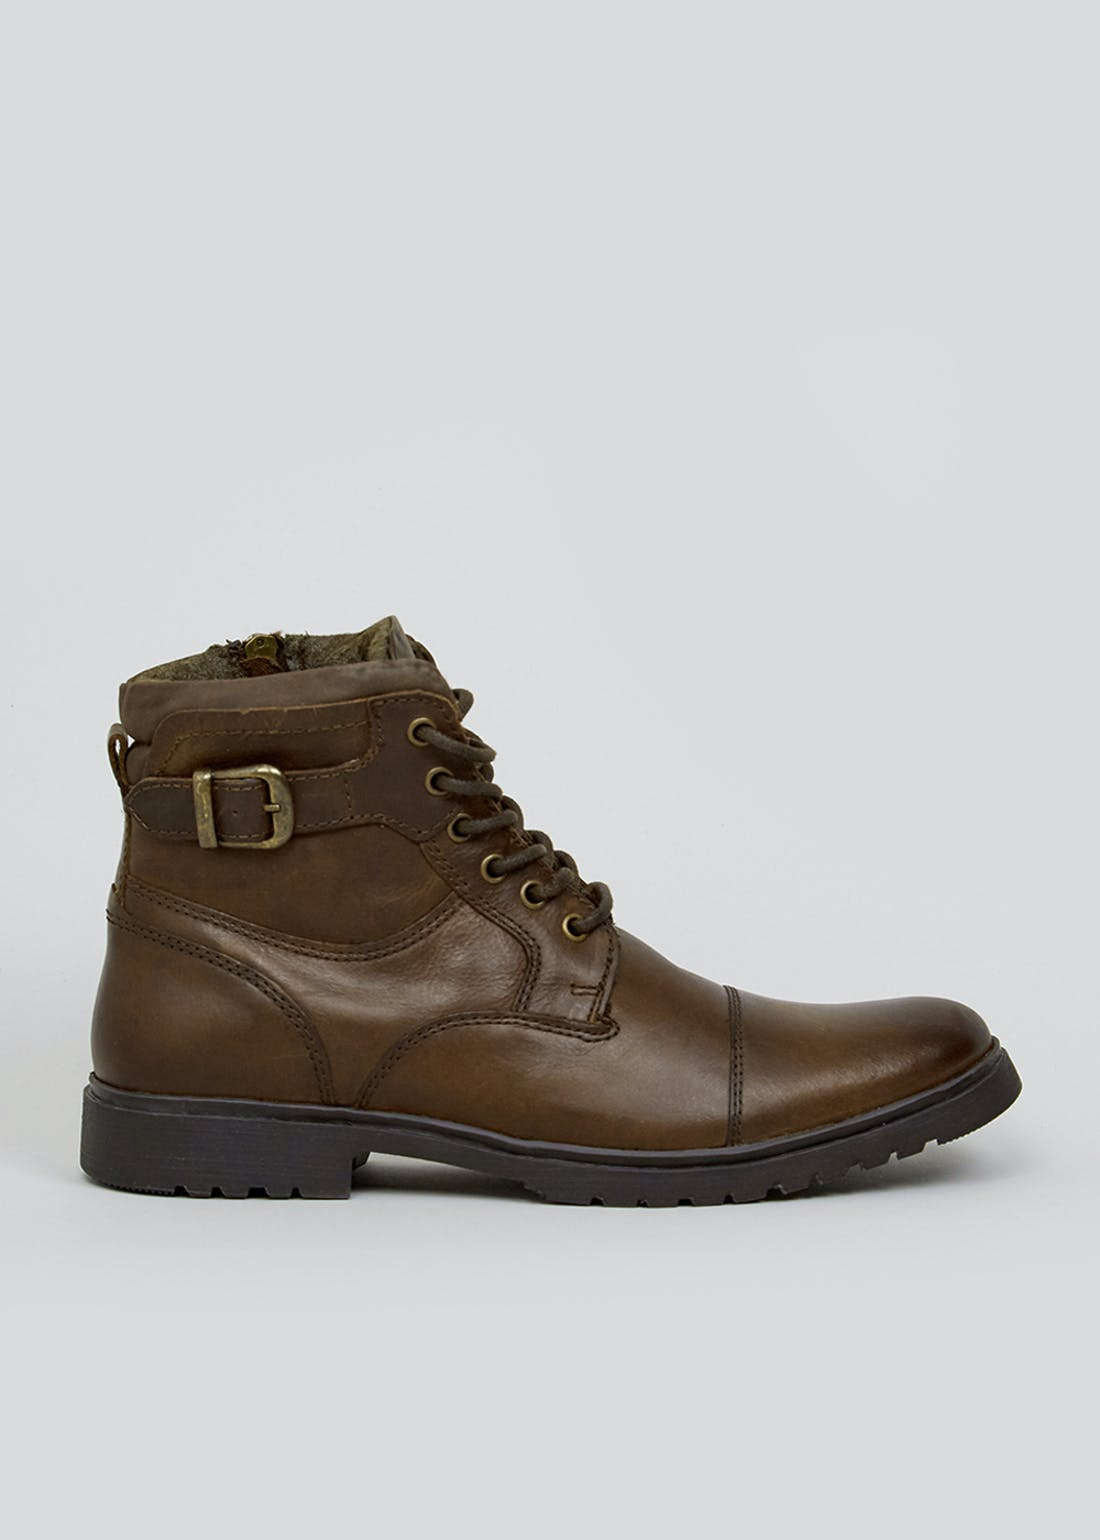 Brown Leather Lace Up Boots